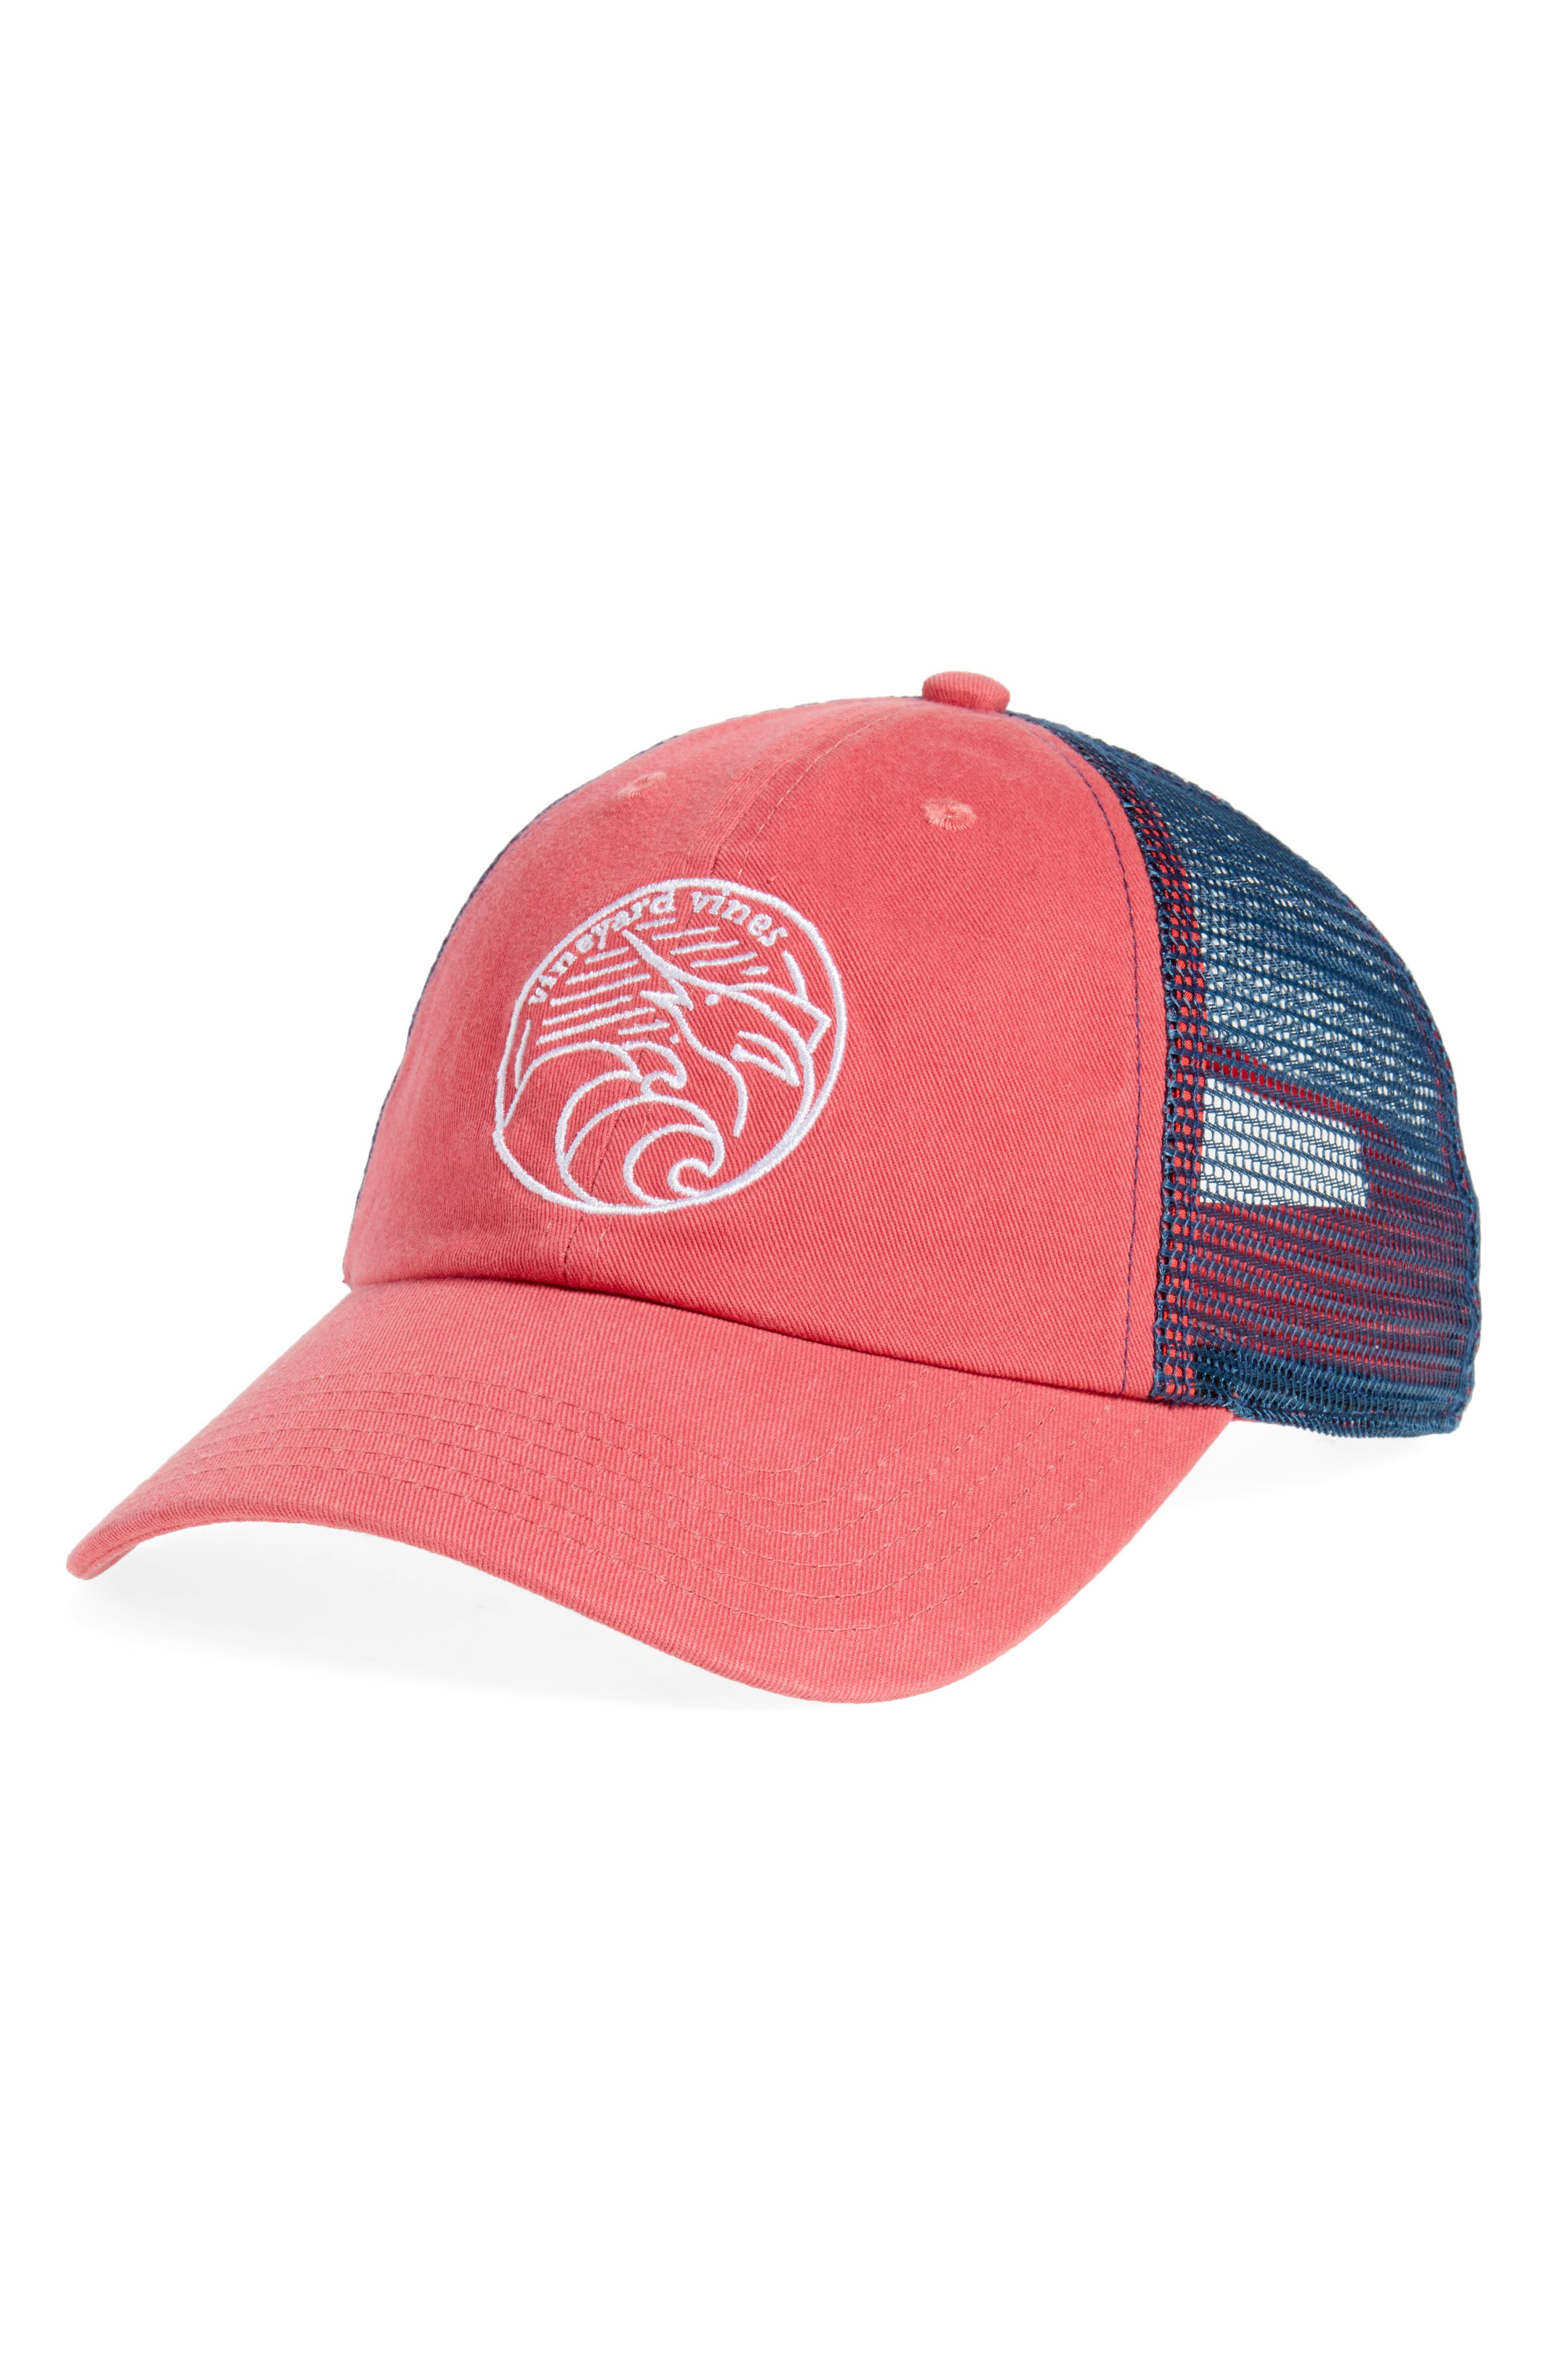 Low Pro Marlin Trucker Cap,                             Main thumbnail 1, color,                             628